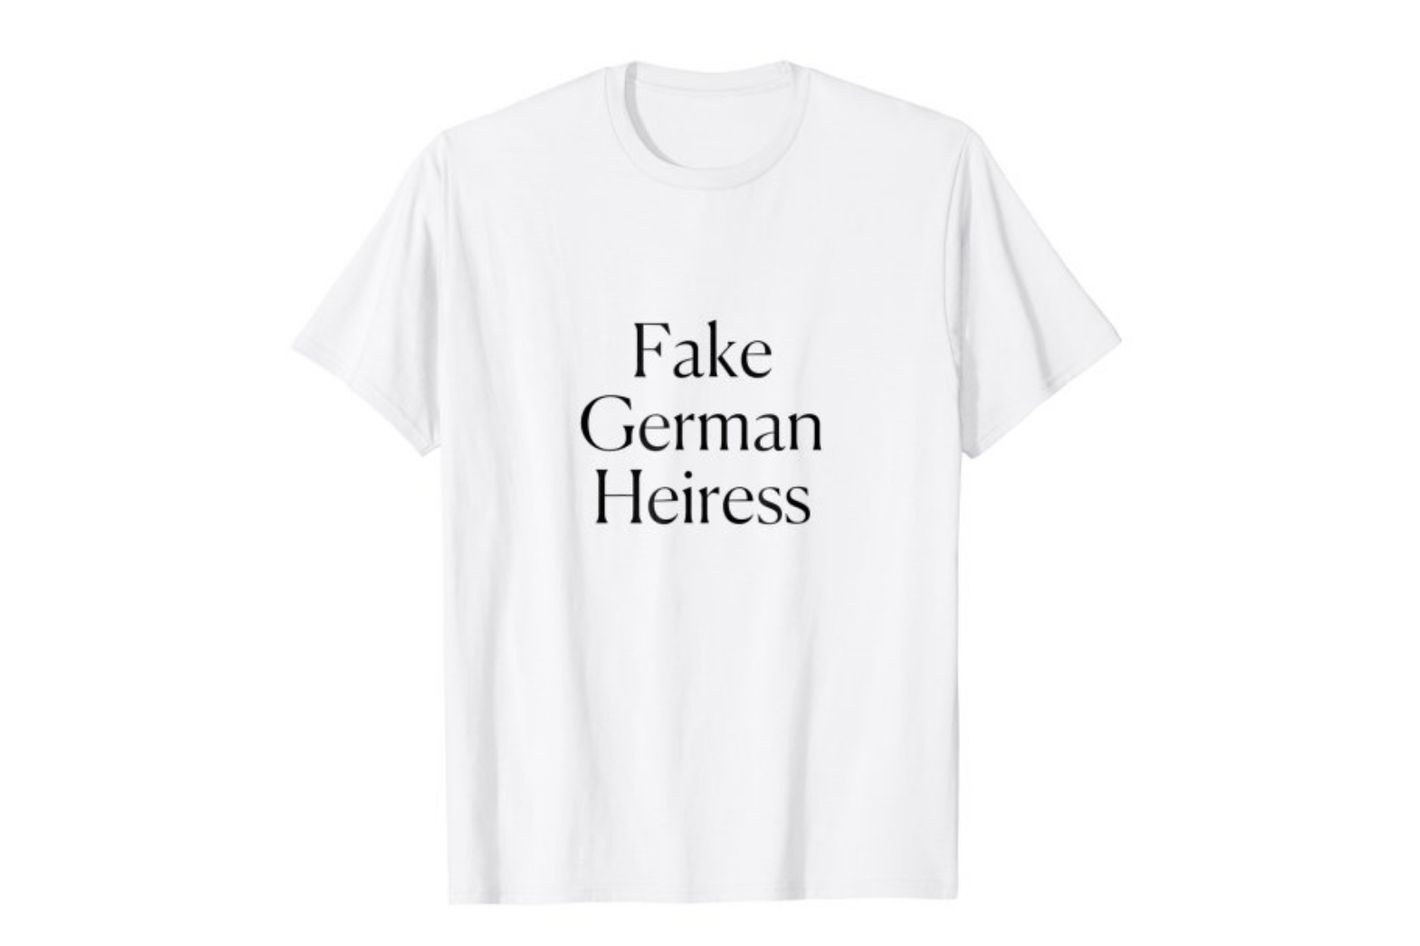 Fake German Heiress Tee